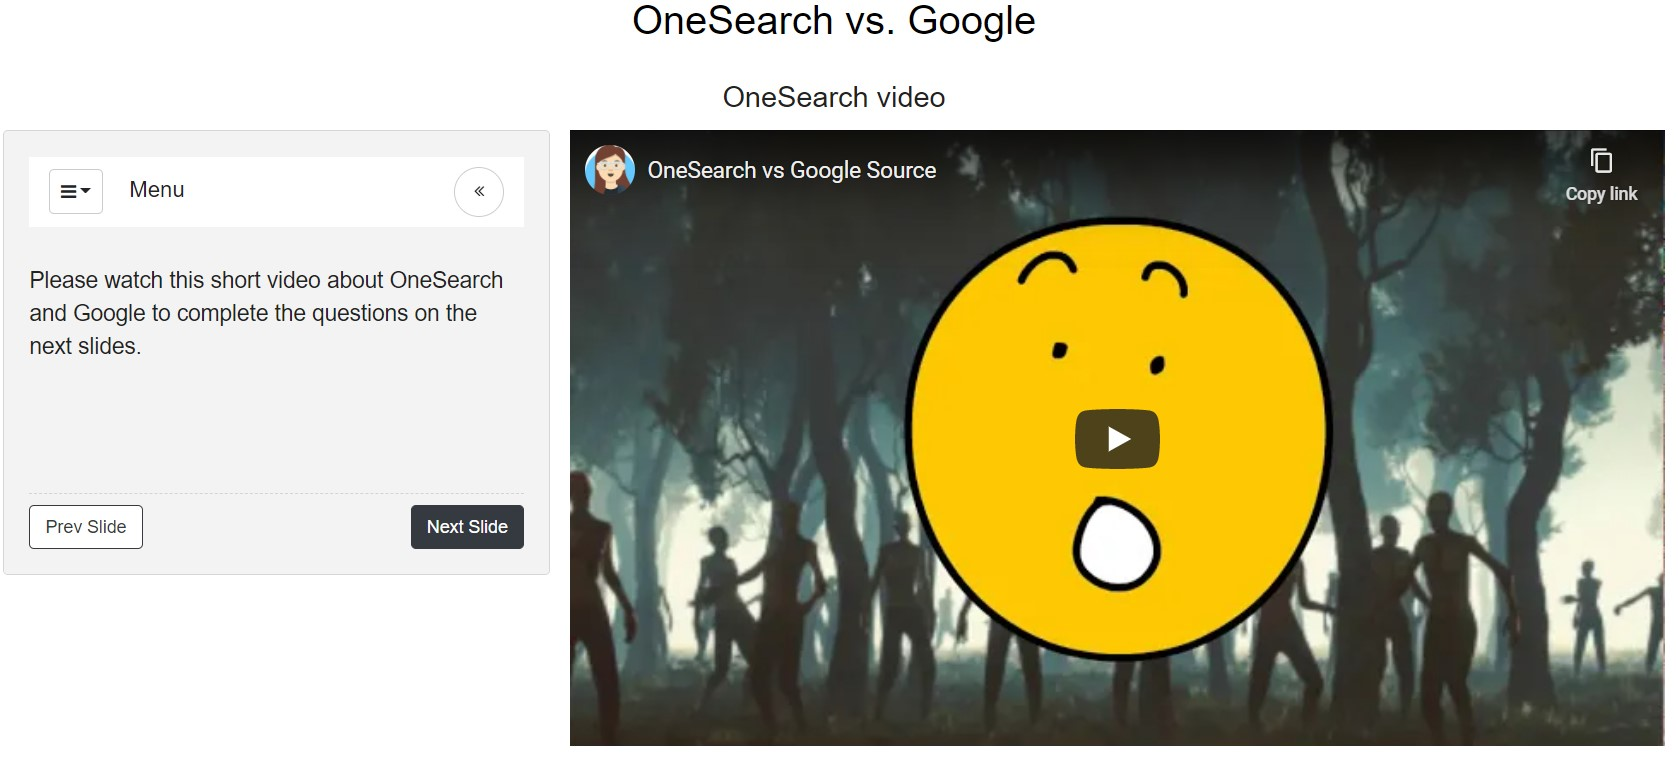 Screenshot from OneSearch vs. Google tutorial page